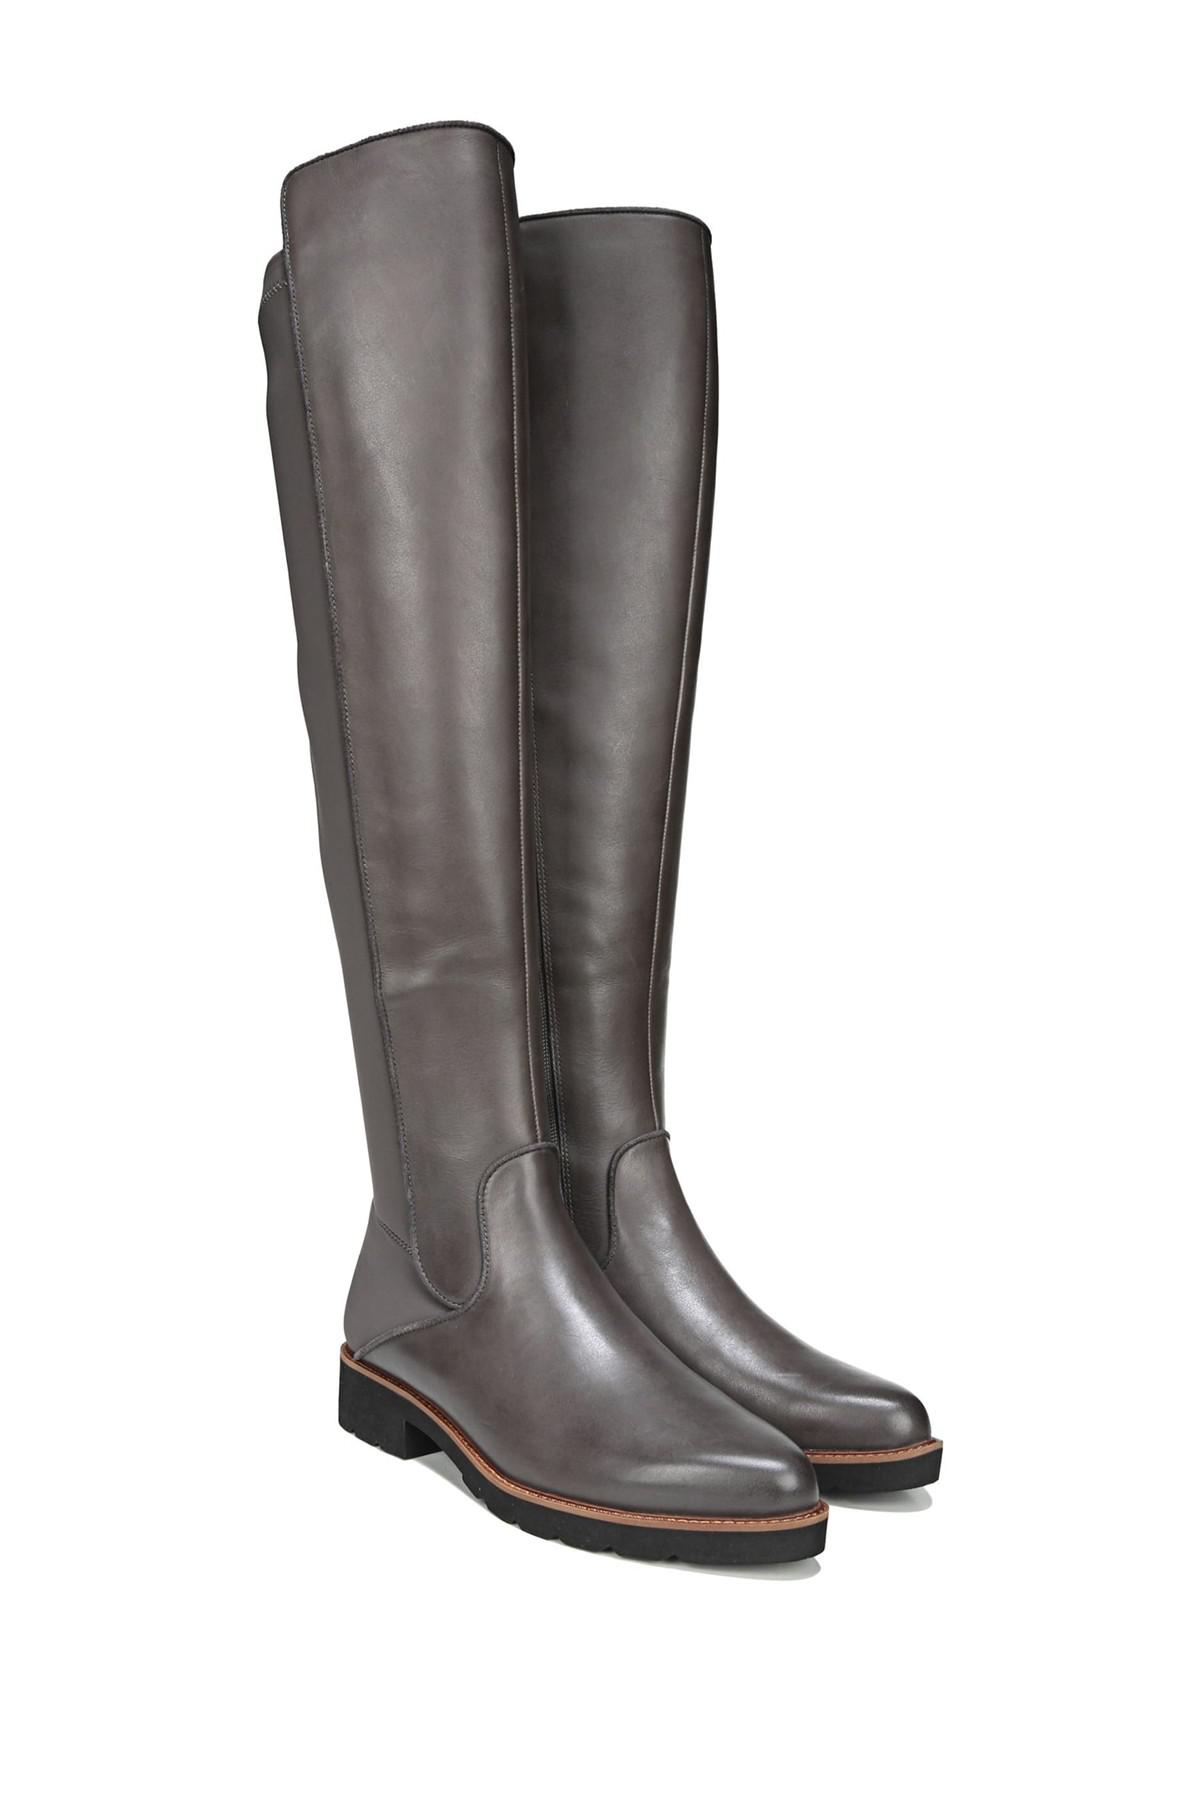 d707b2a14e8 Lyst - Franco Sarto Benner Leather Over-the-knee Boot in Black - Save 40%